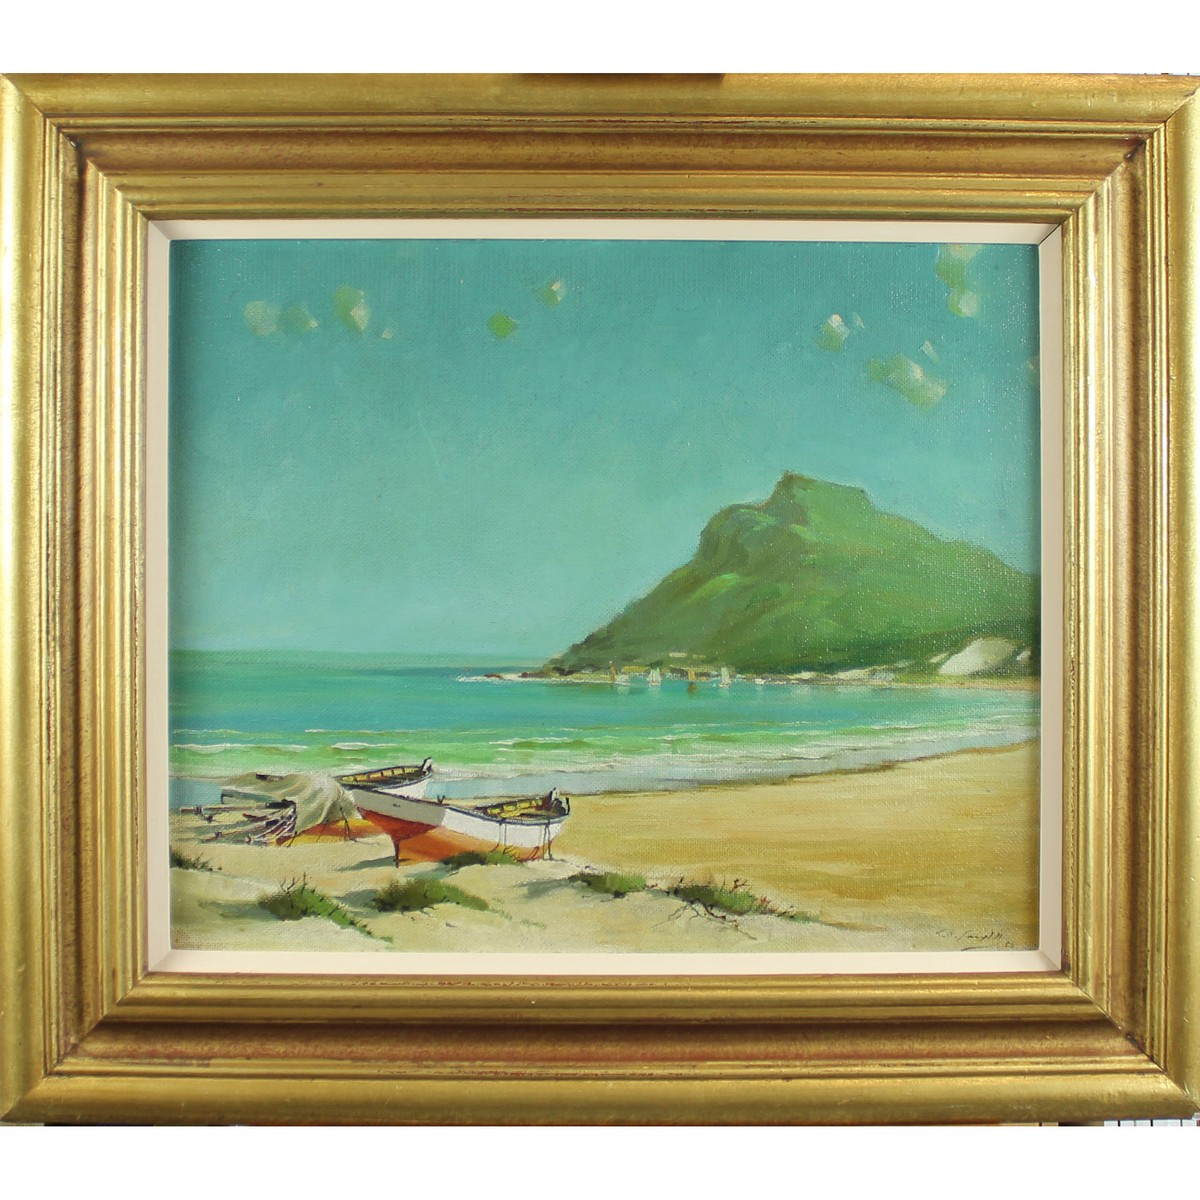 Lot 40 - Campbell, George In the style of 1917-1979 Irish AR, Spanish Beach